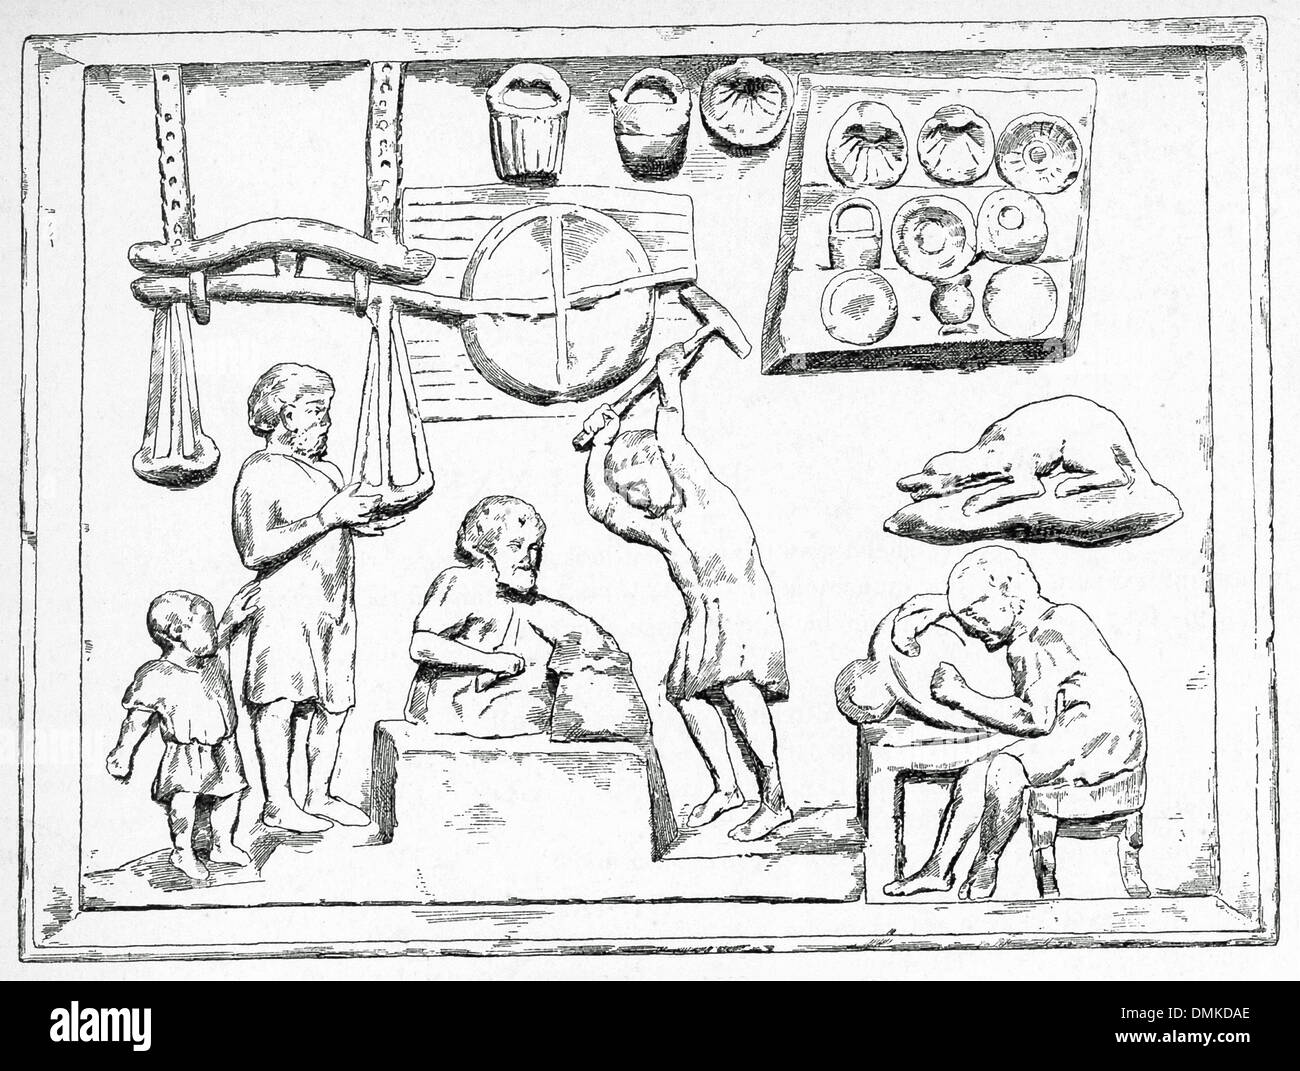 worksheet Roman Baths Worksheet ancient roman black and white stock photos images alamy this relief shows a coppersmiths shop in the center is square block